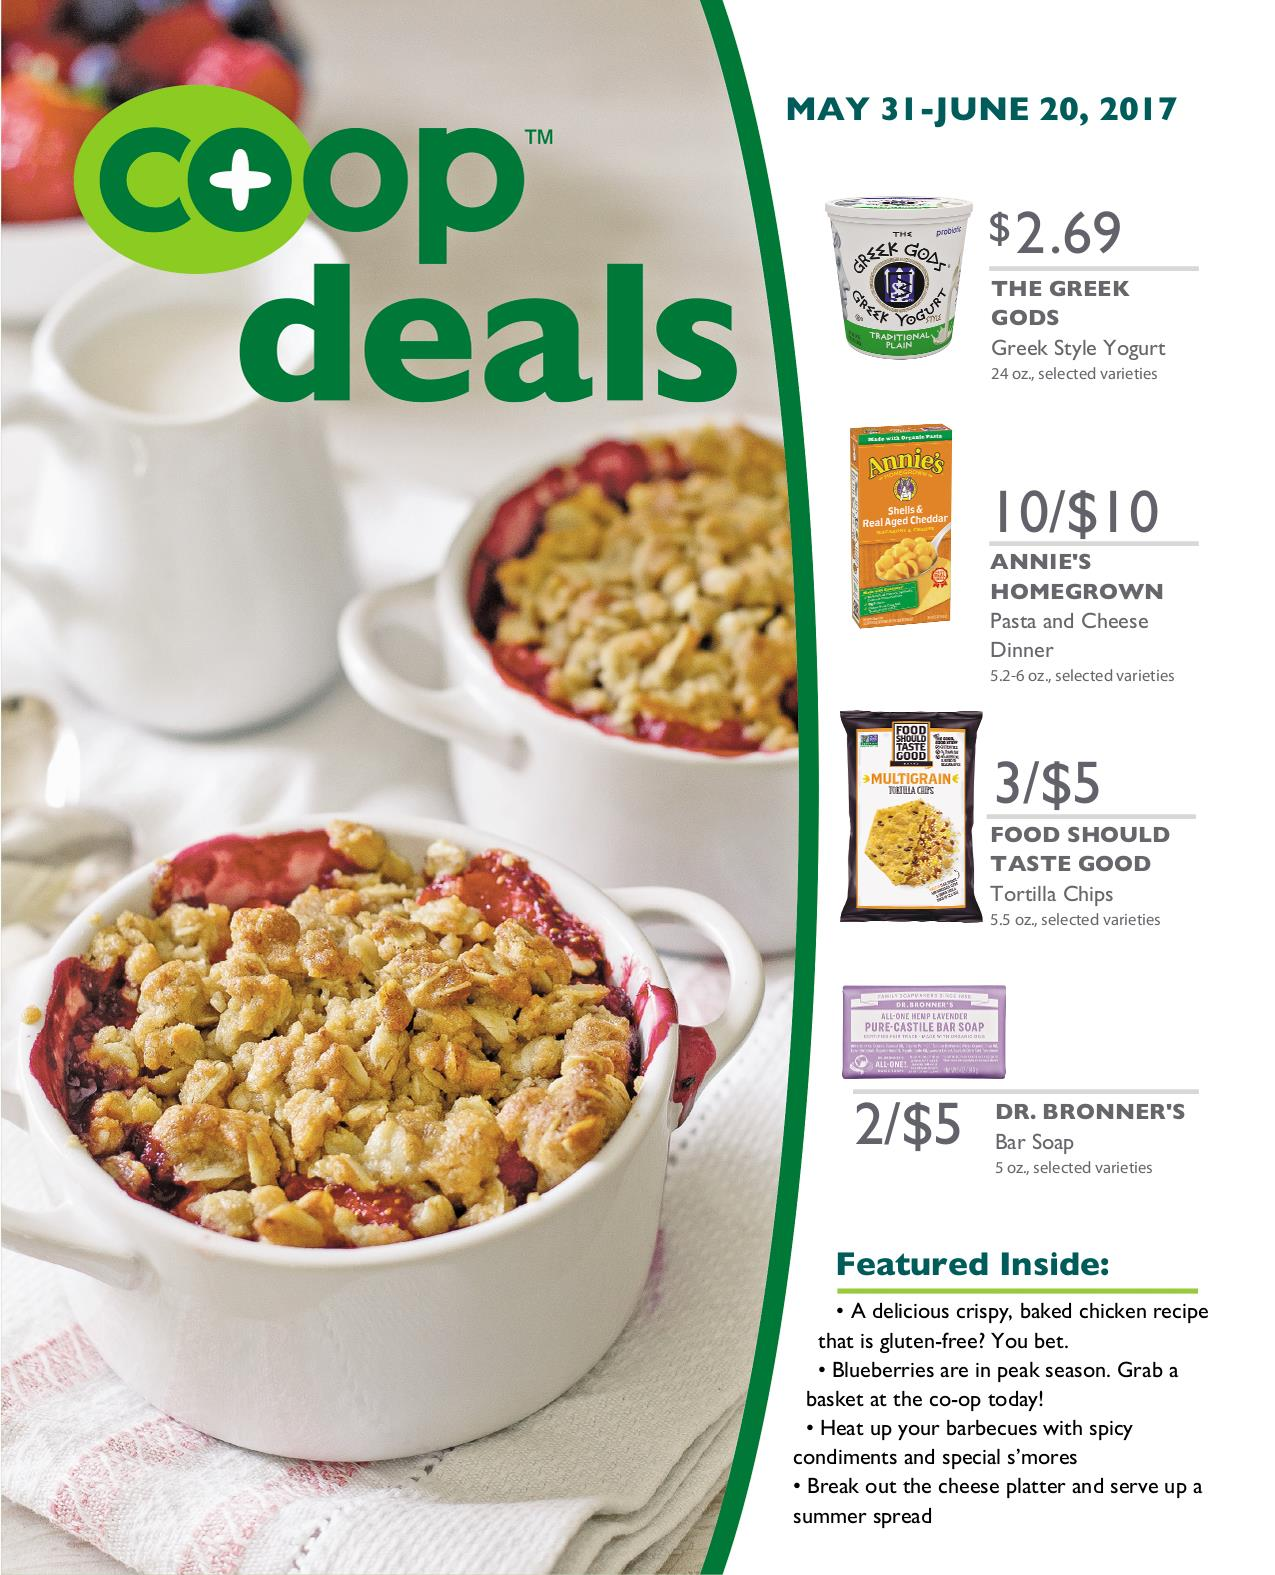 Co+op Deals June 2017 - Flyer A